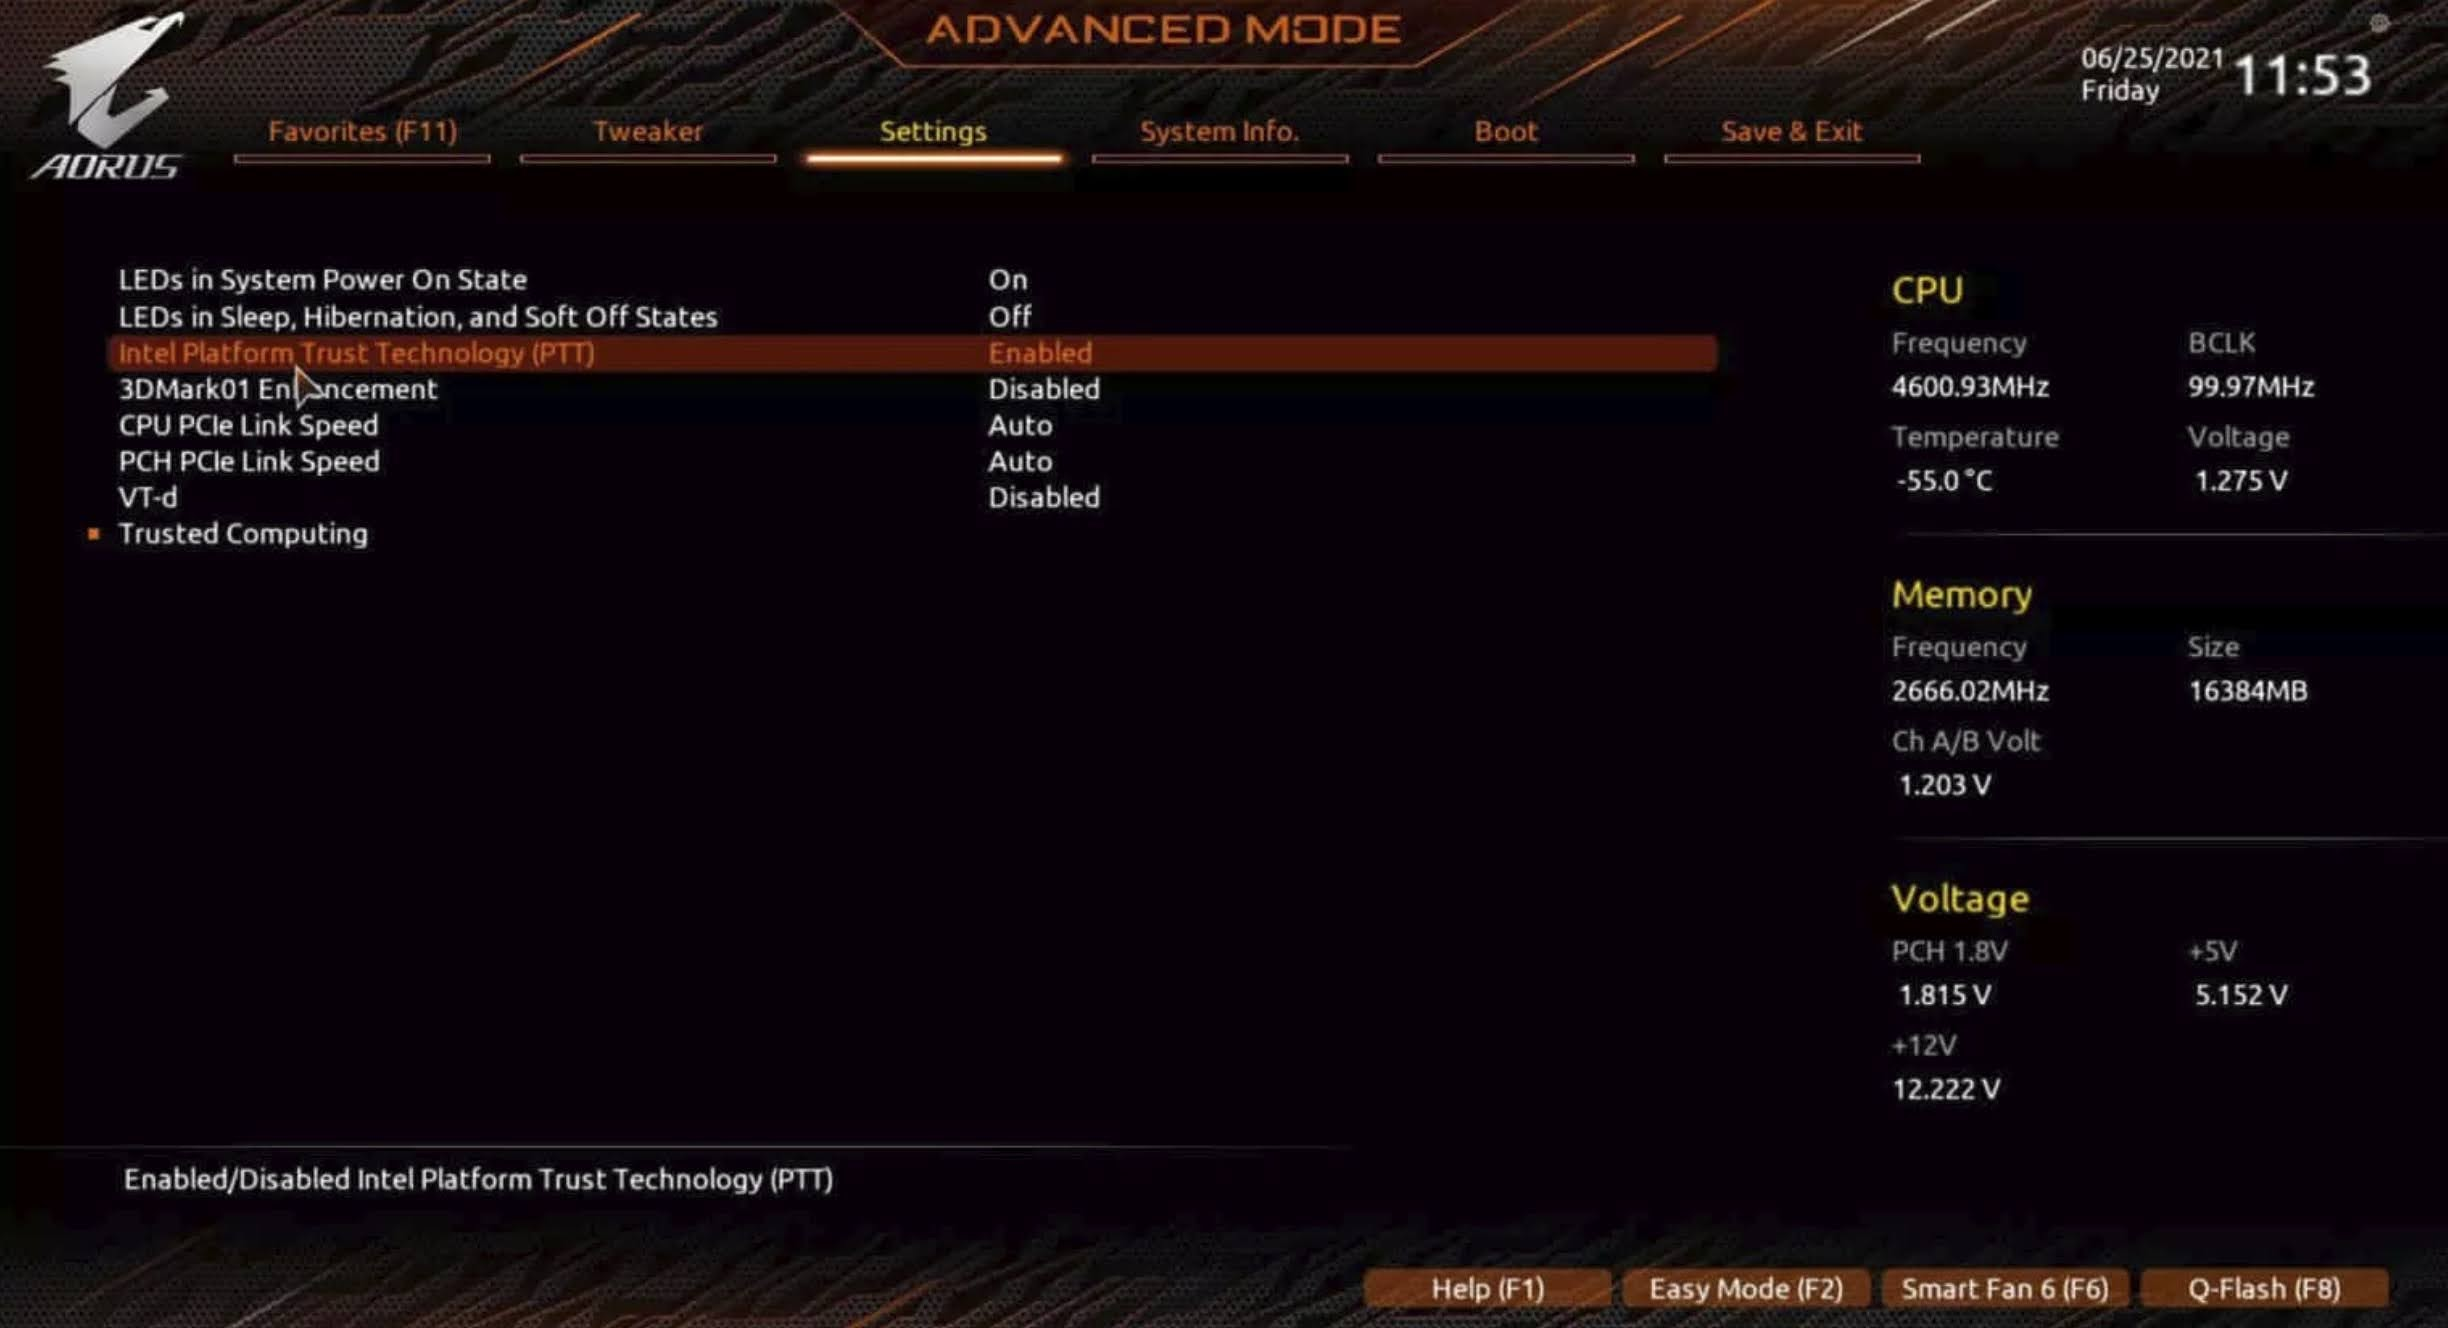 Enable TPM 2.0 for GIGABYTE motherboard using AORUS: For Intel processor, locate Intel Platform Trust Technology (PTT) option and select Enable from the drop-down menu.